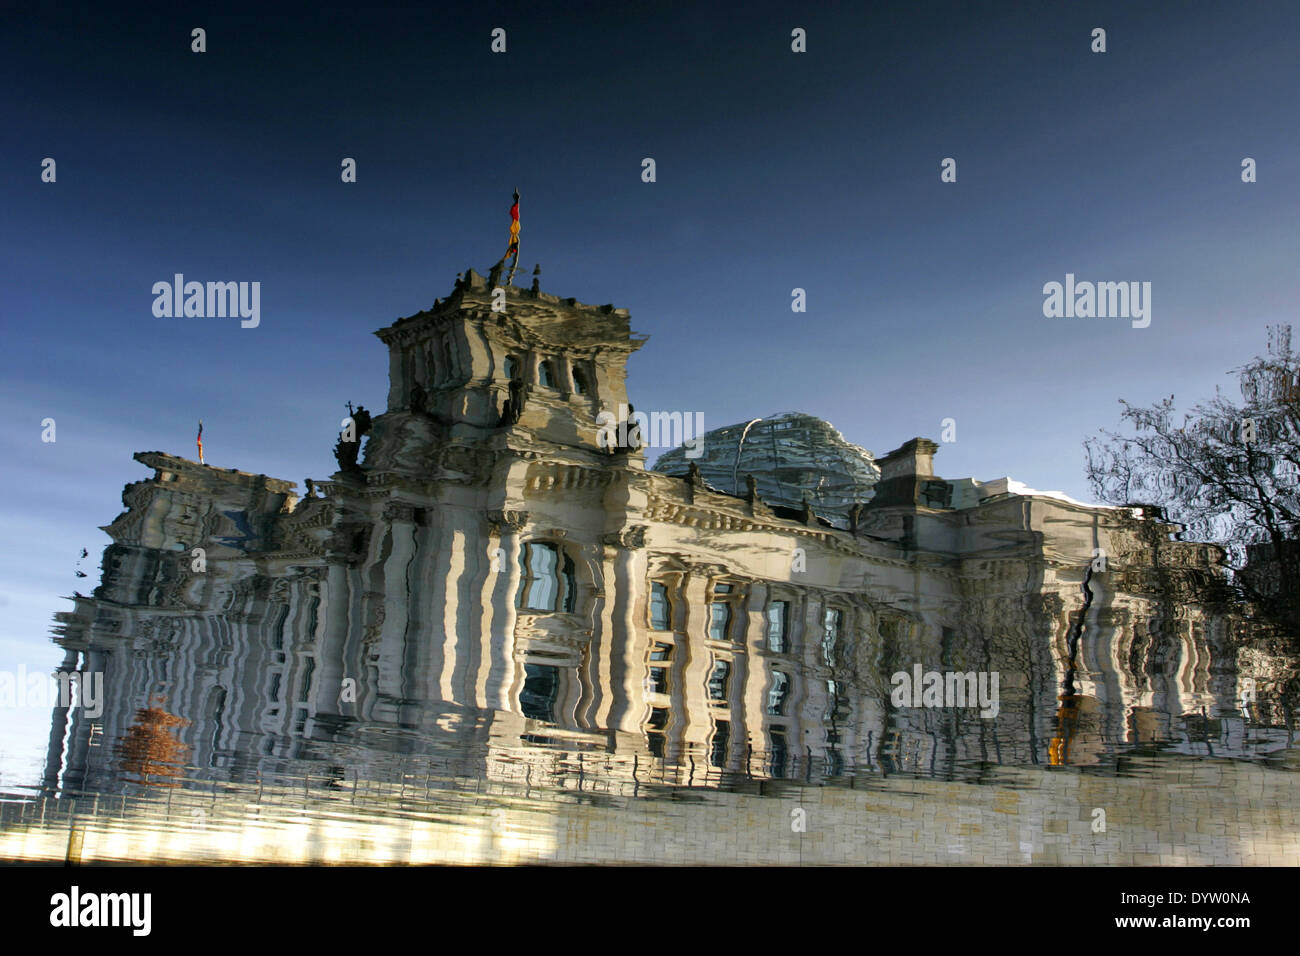 The Reichstag - Stock Image